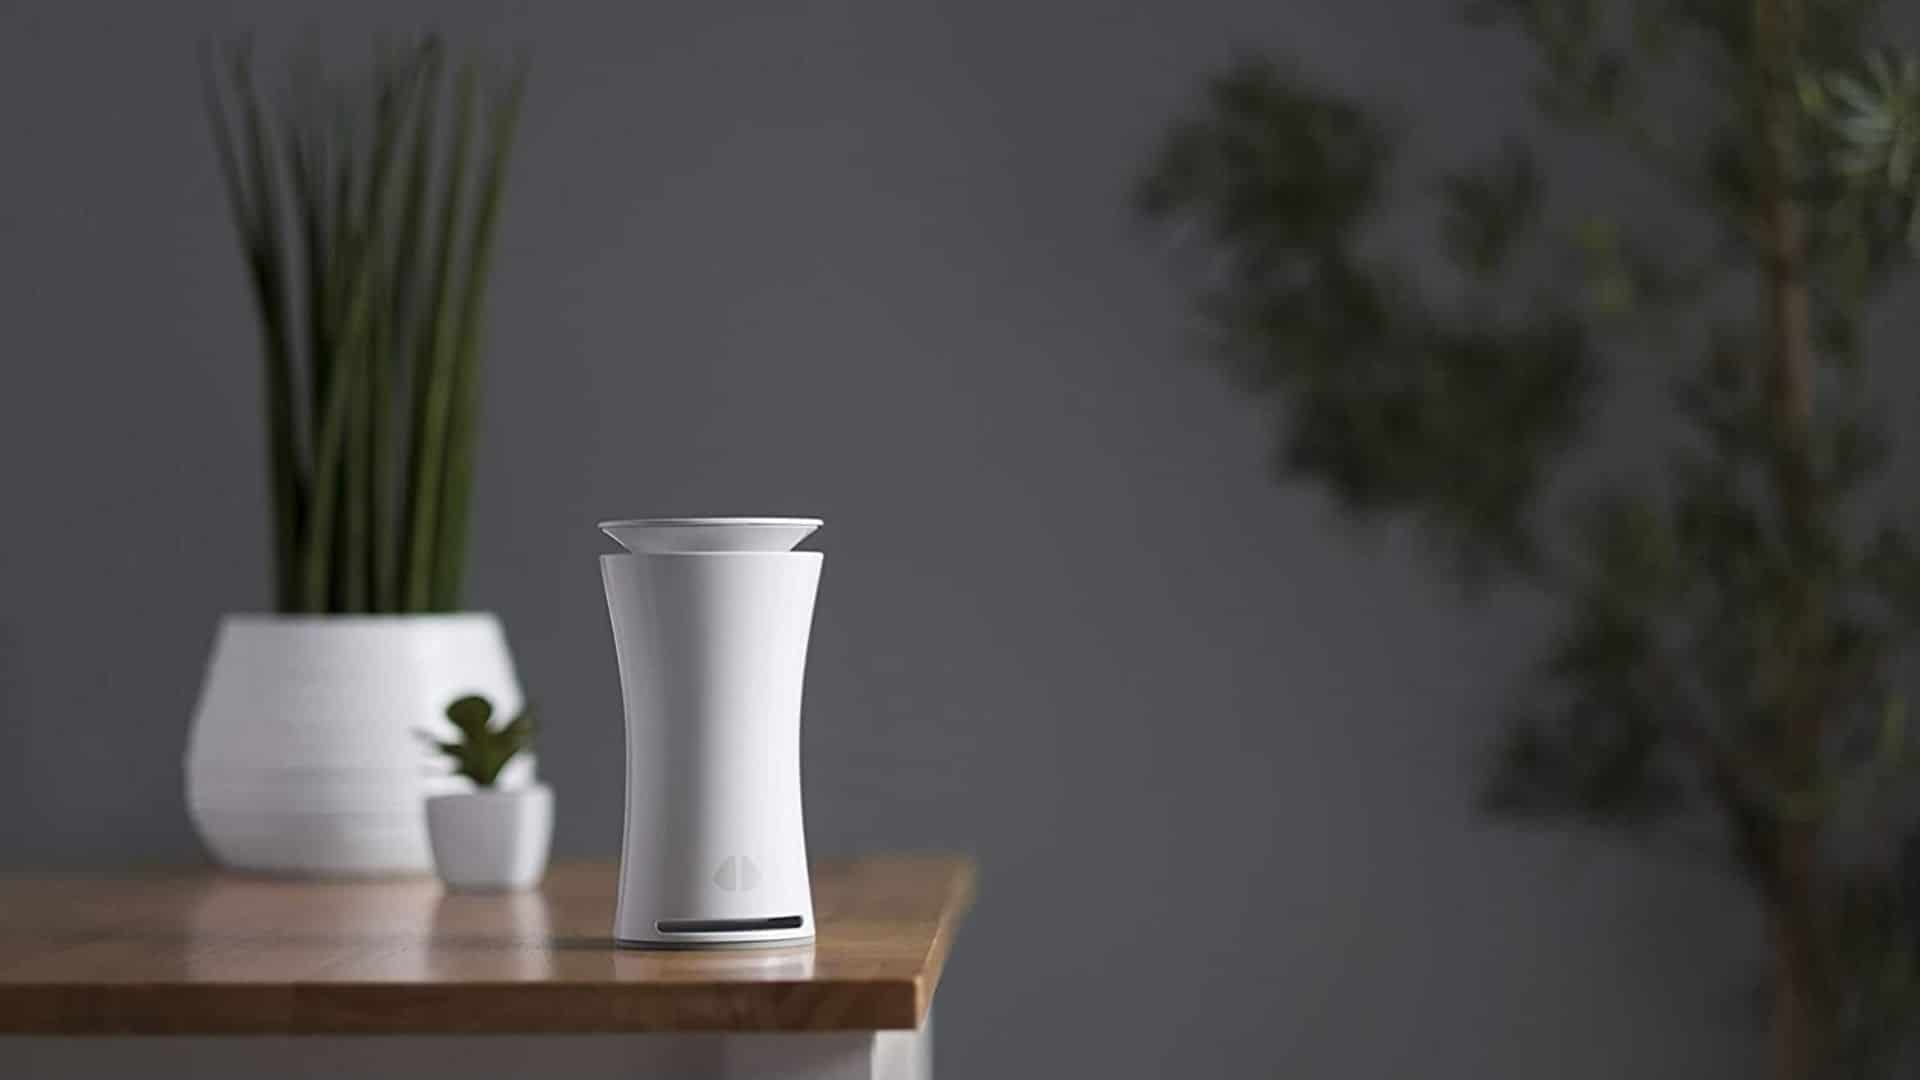 picture of an uhoo indoor air quality sensor on a wood table beside a plant